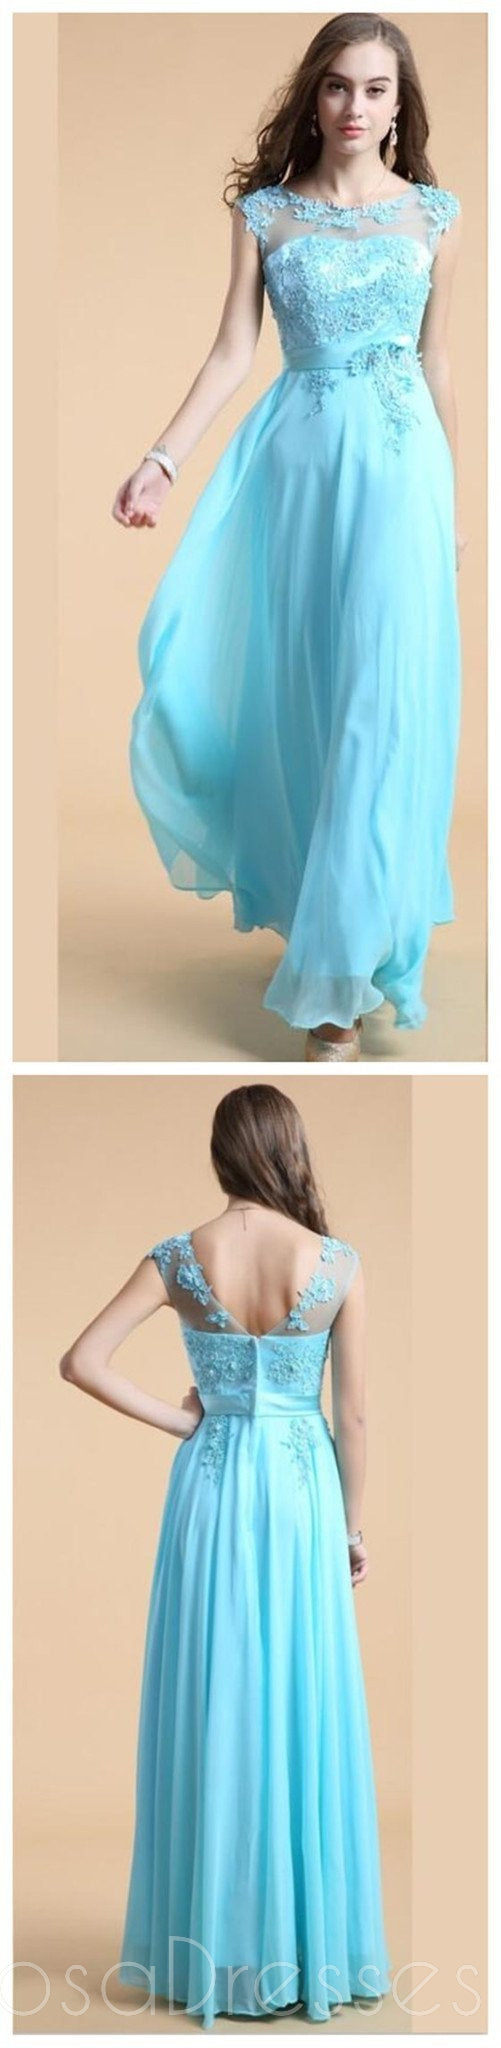 Tiffany Blue Blue Prom Dress, lace Prom Dress,Pretty Dress ,Cheap ...